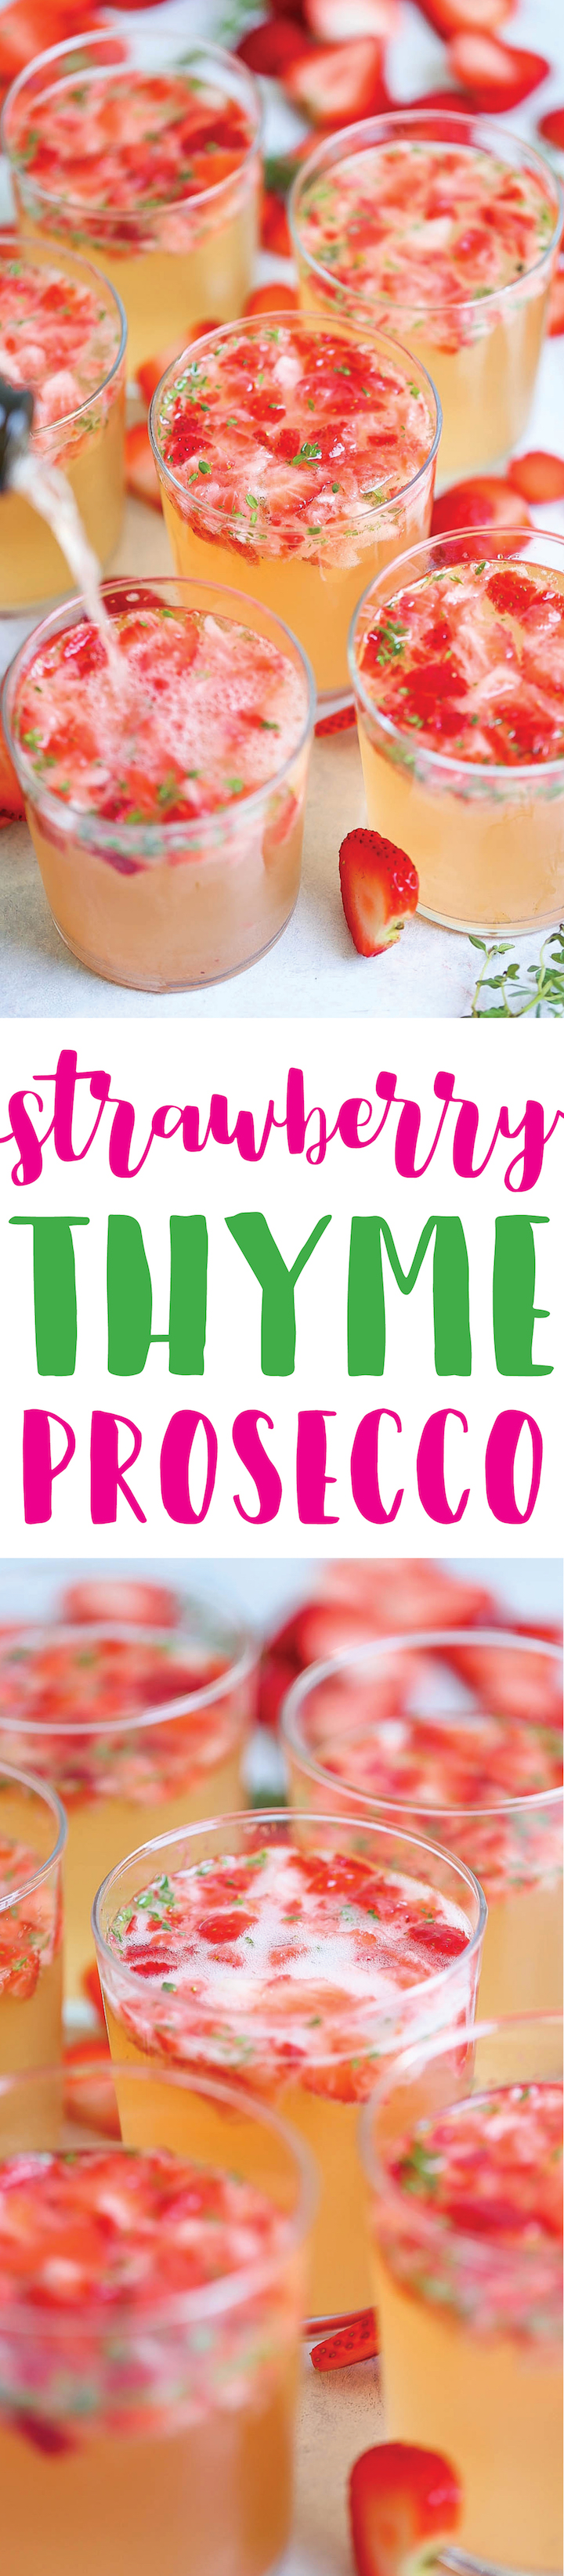 Strawberry Thyme Prosecco - A 5-min cocktail! Sweet, bubbly and refreshing with just the perfect amount of strawberries, thyme, limoncello and prosecco!